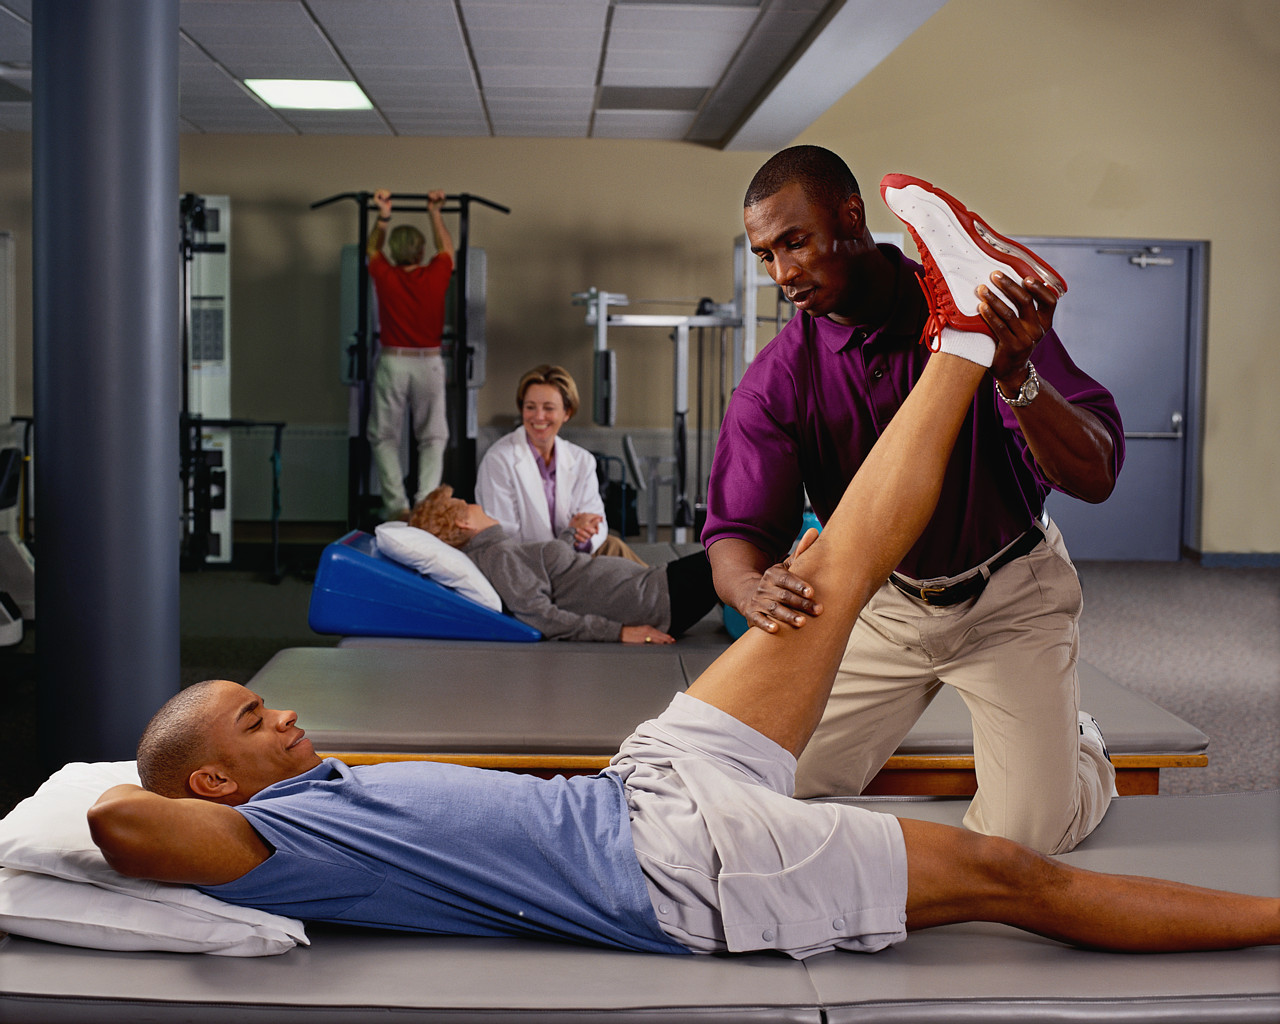 Patient receiving physical therapy